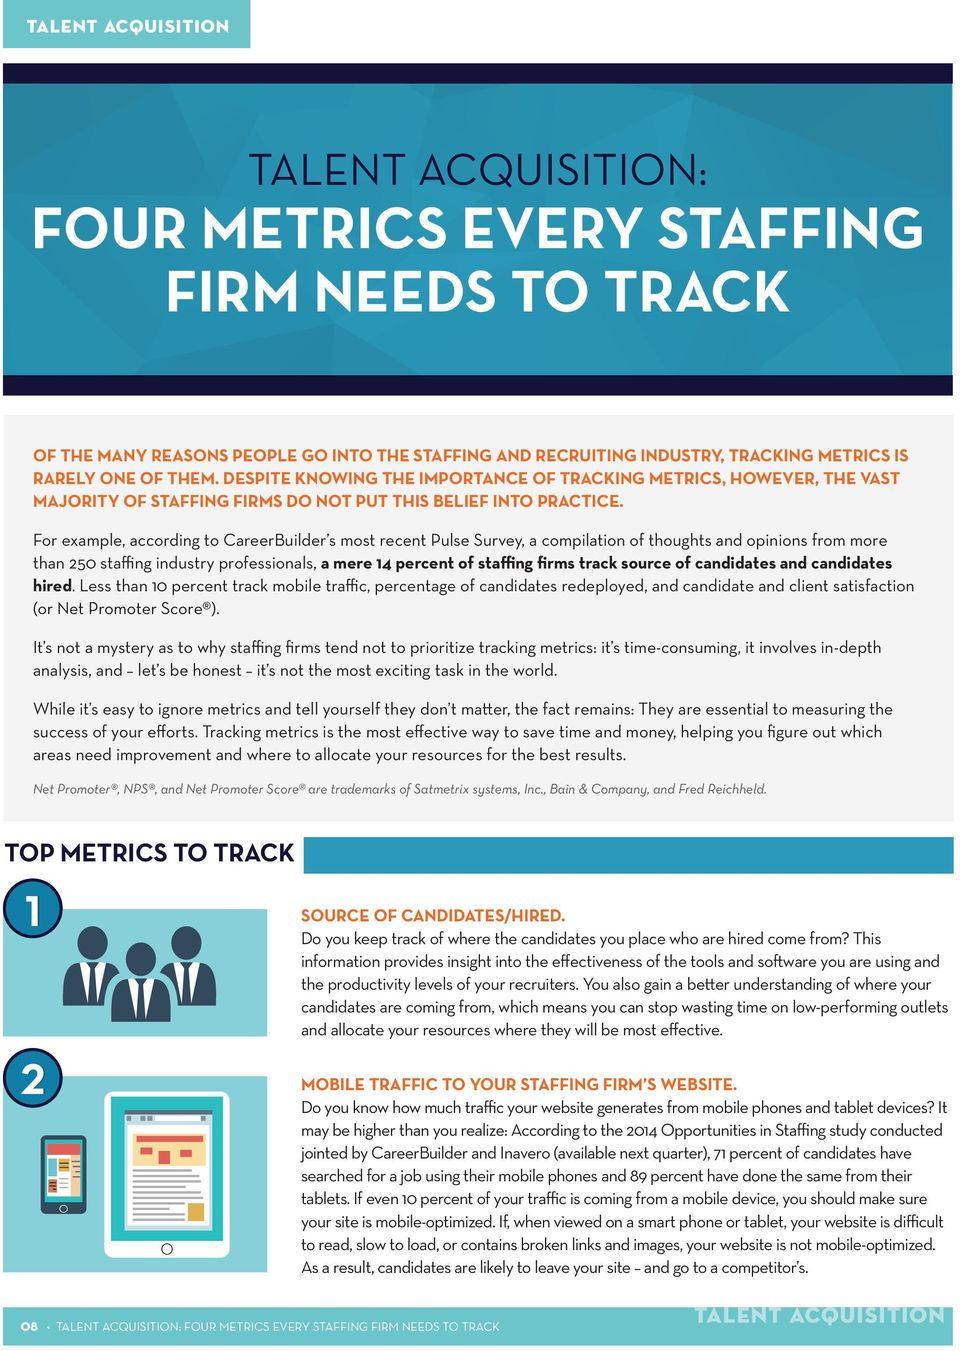 For example, according to CareerBuilder s most recent Pulse Survey, a compilation of thoughts and opinions from more than 250 staffing industry professionals, a mere 14 percent of staffing firms